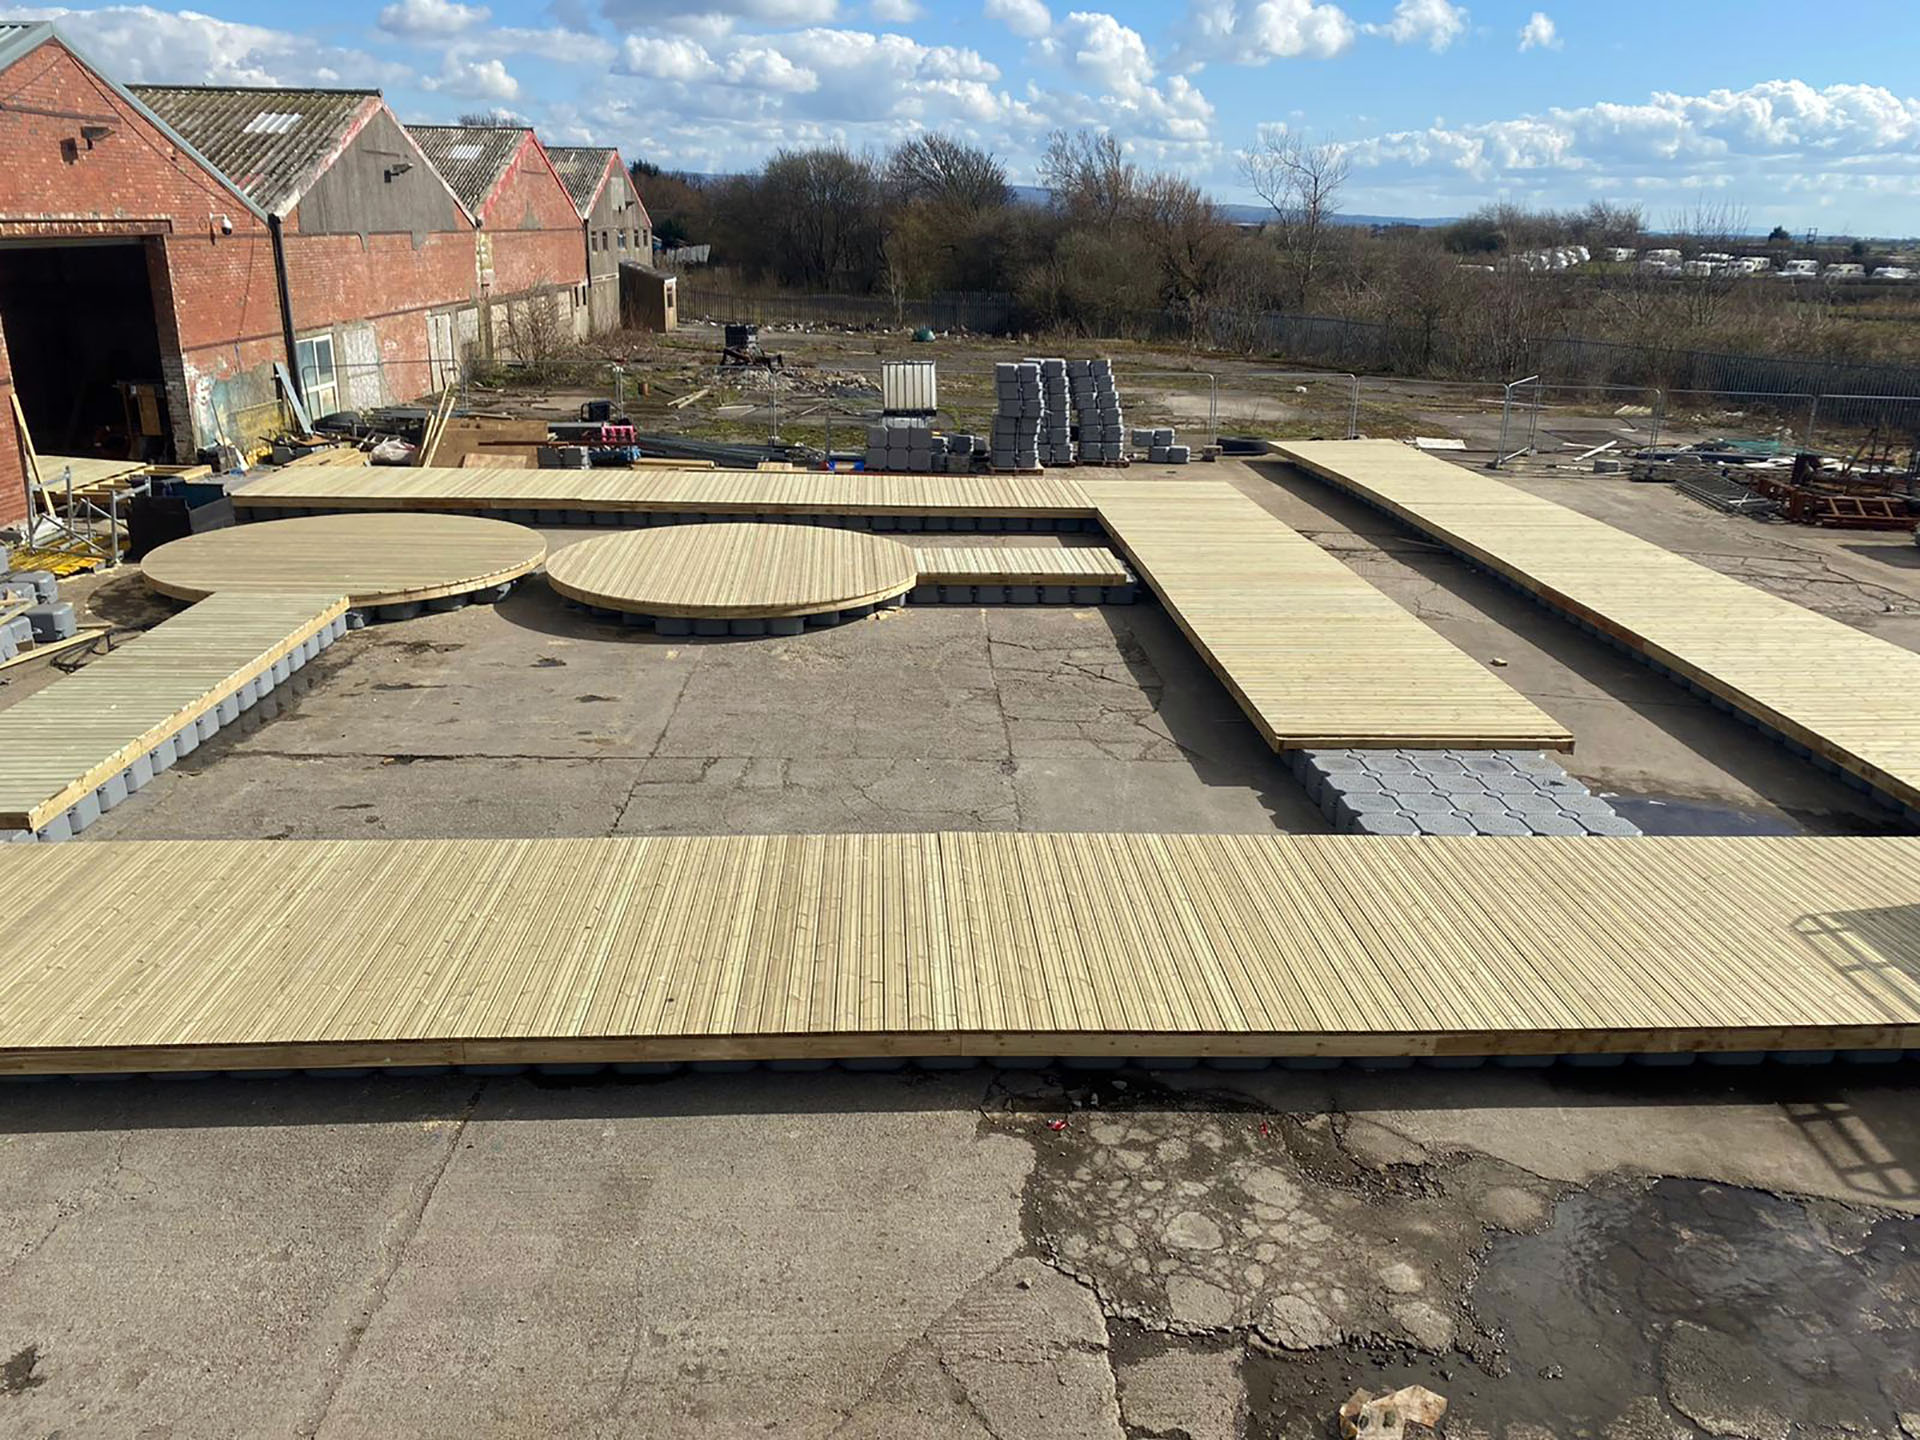 floating pontoon system covered with a wood deck